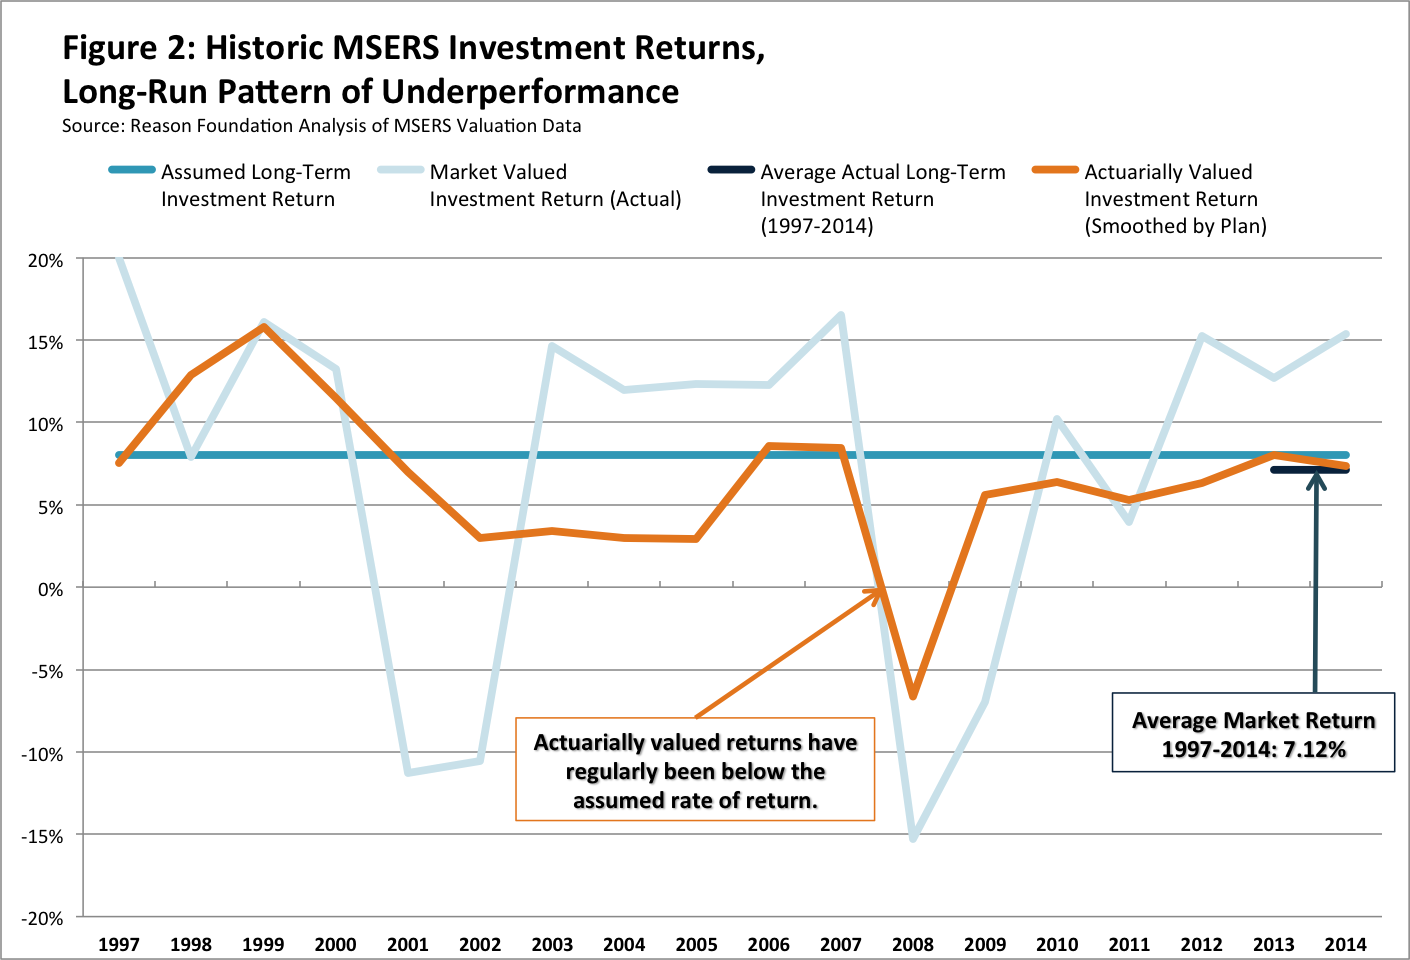 MSERS Investment Returns